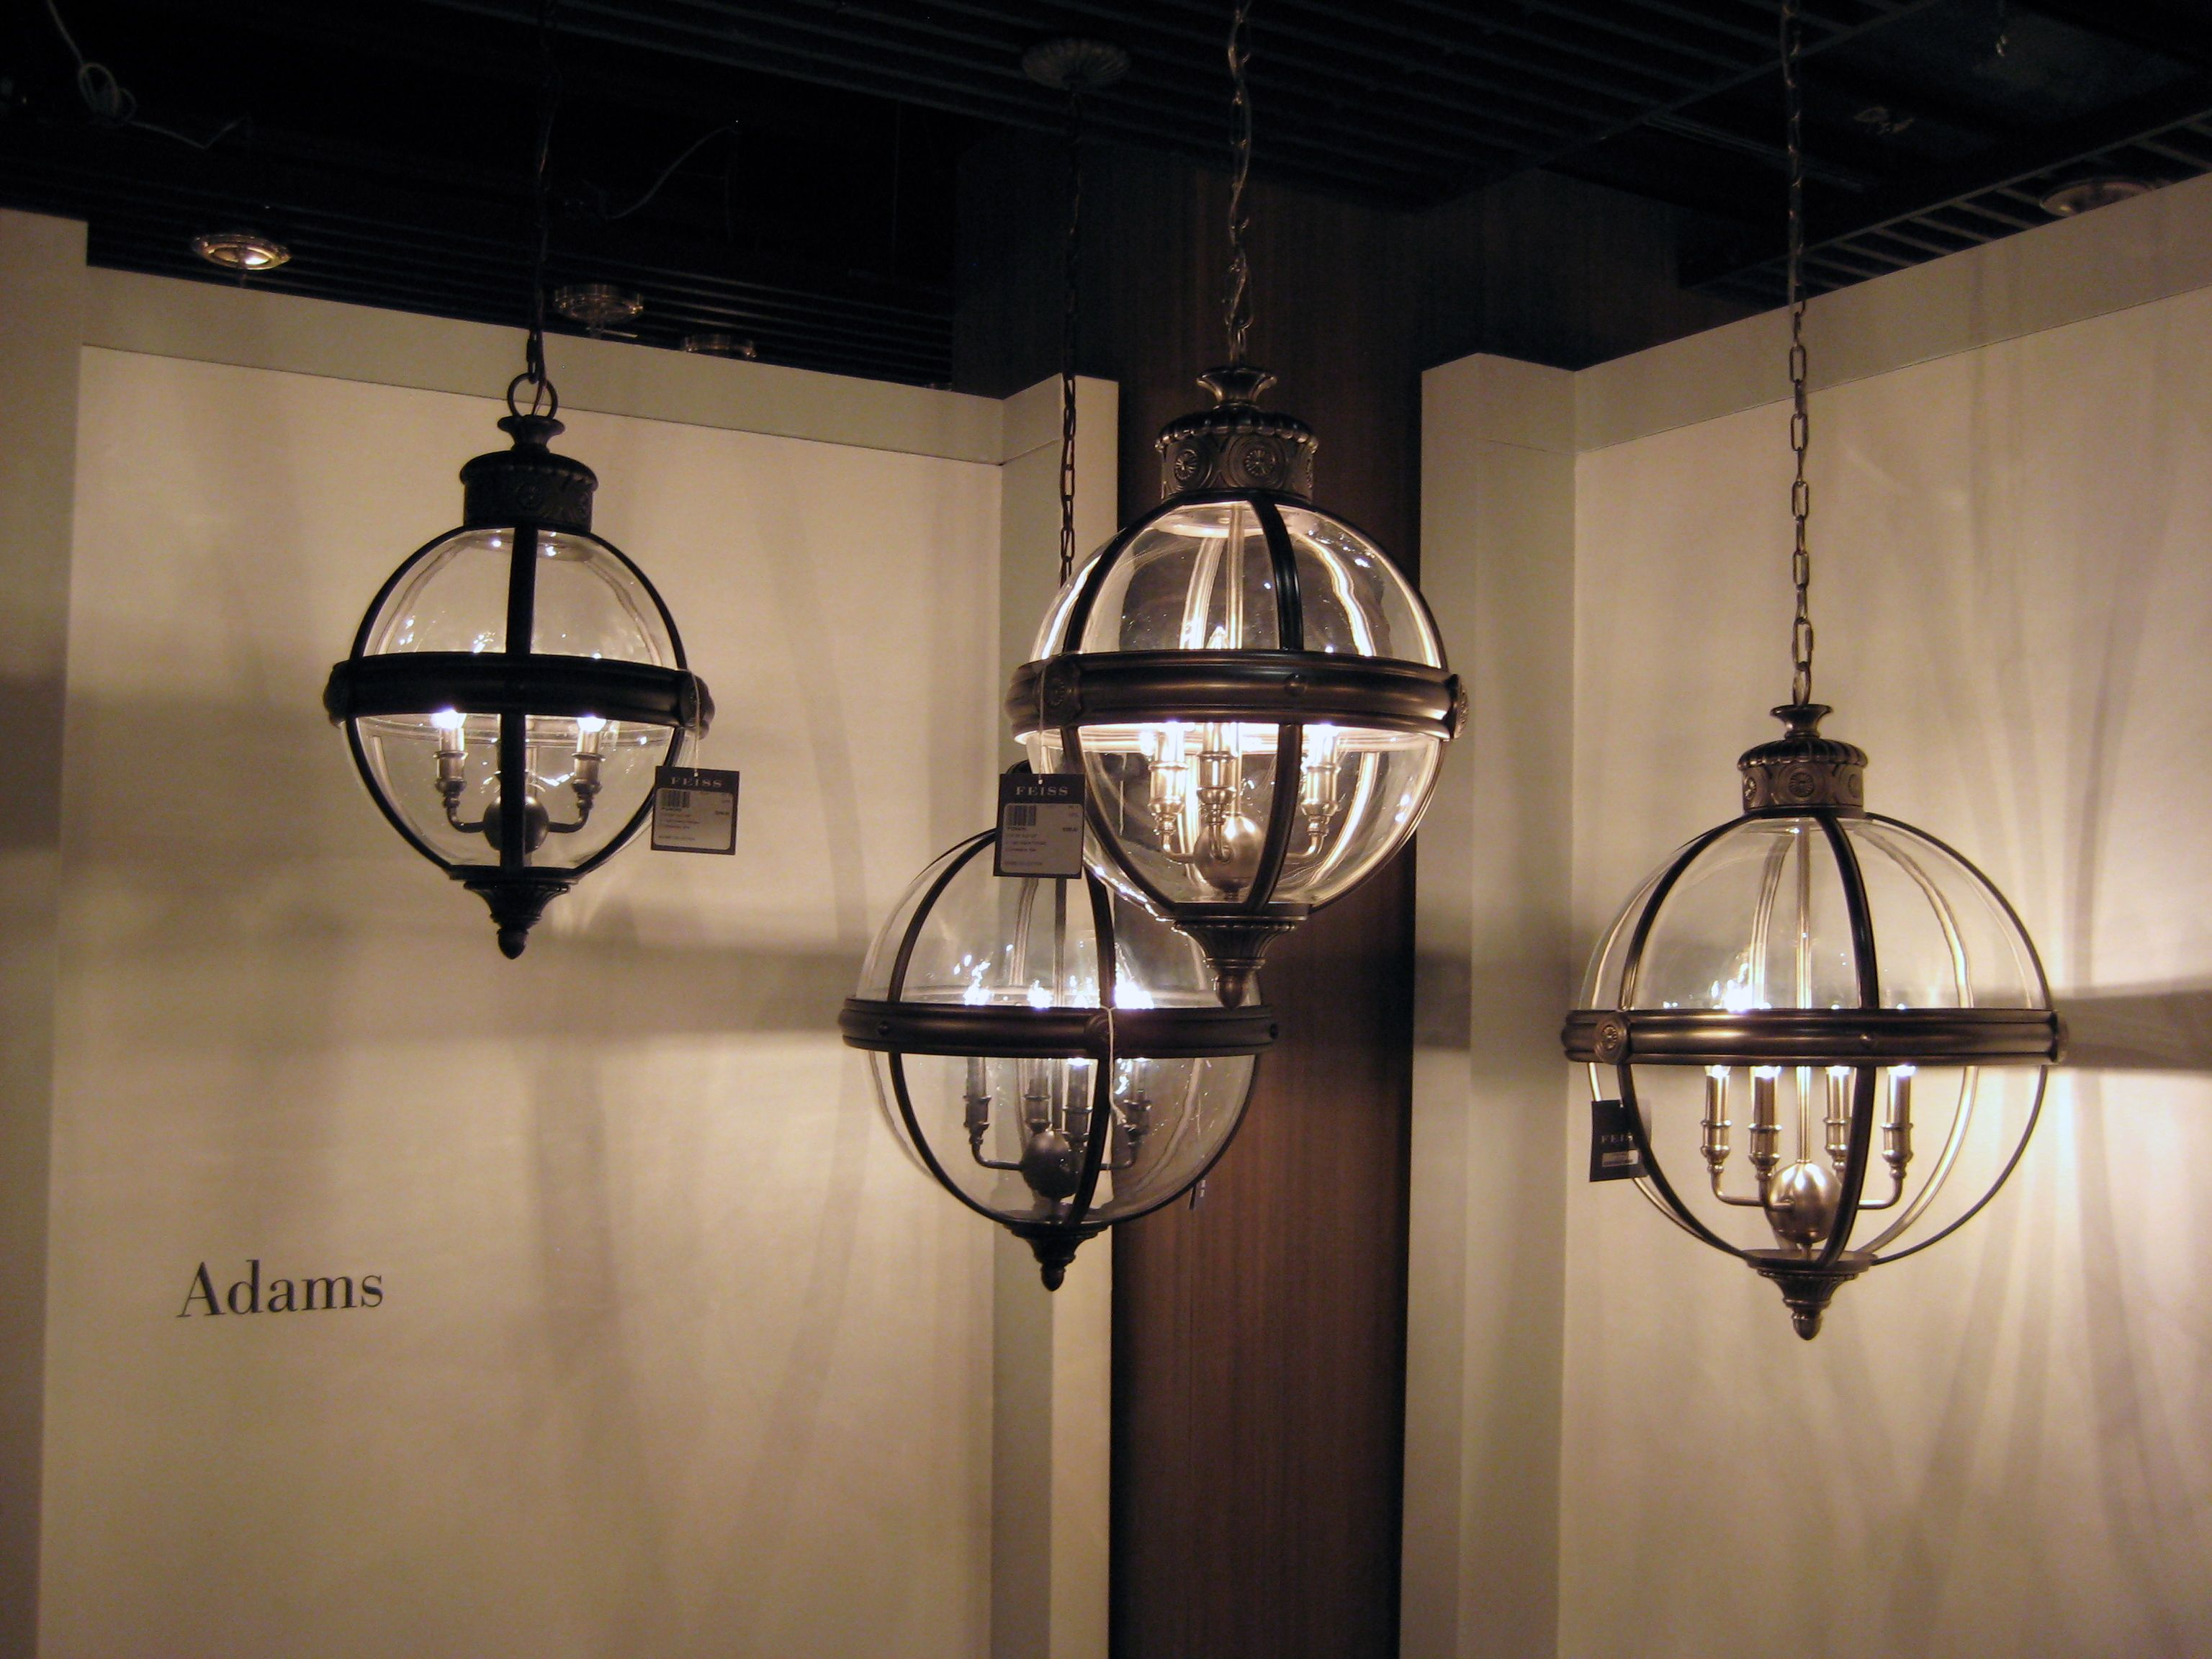 Feiss Bristol 2 Light Vanity Fixture In Oil Rubbed Bronze: Adams Collection, Feiss, Oil Rubbed Bronze & Antique